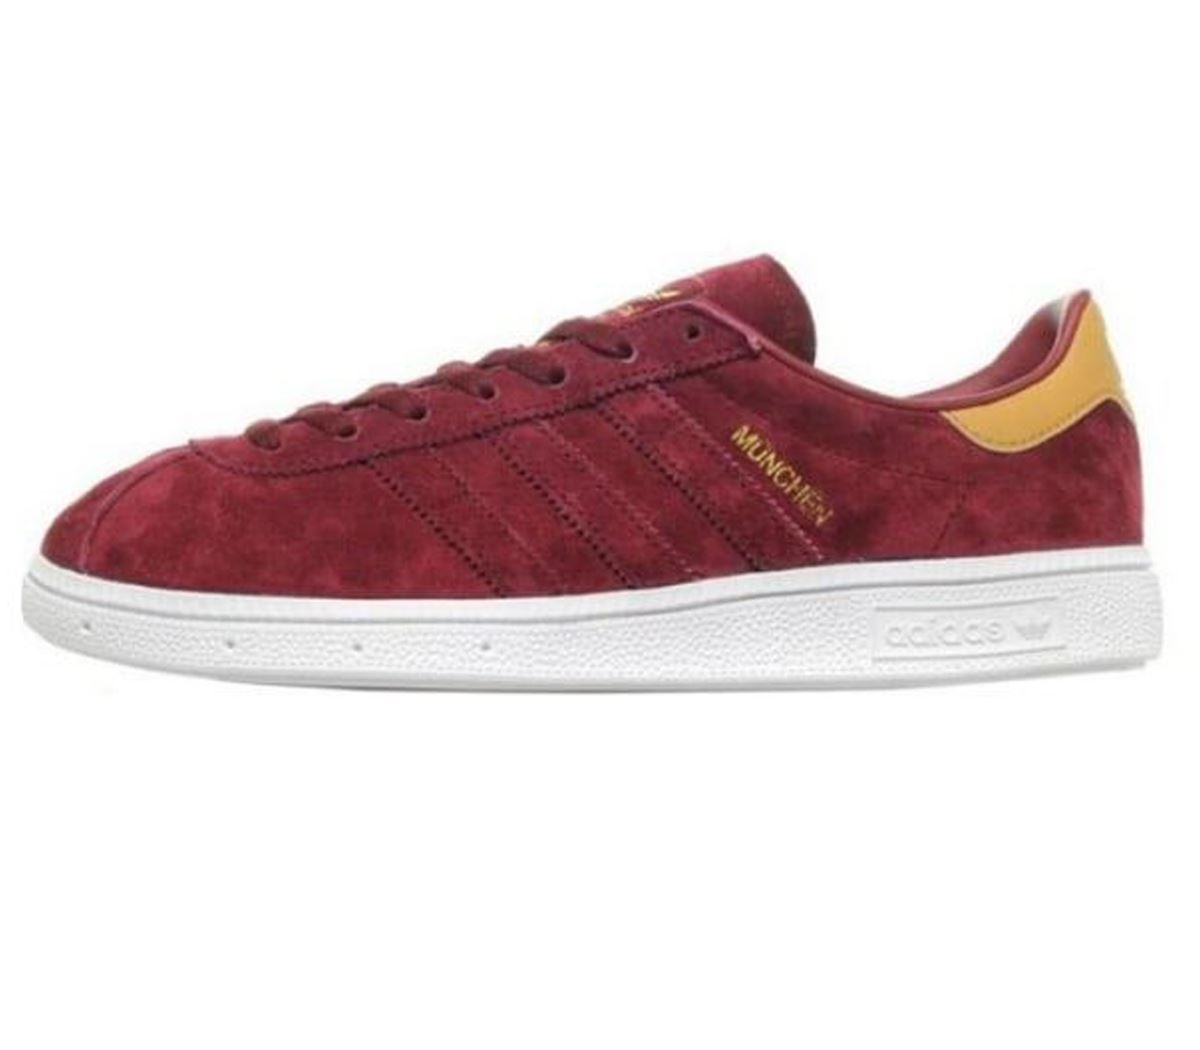 5386413c8e3f Details about adidas Originals Munchen Mens Trainers Multisport Outdoor  Shoes CQ1788 Burgundy